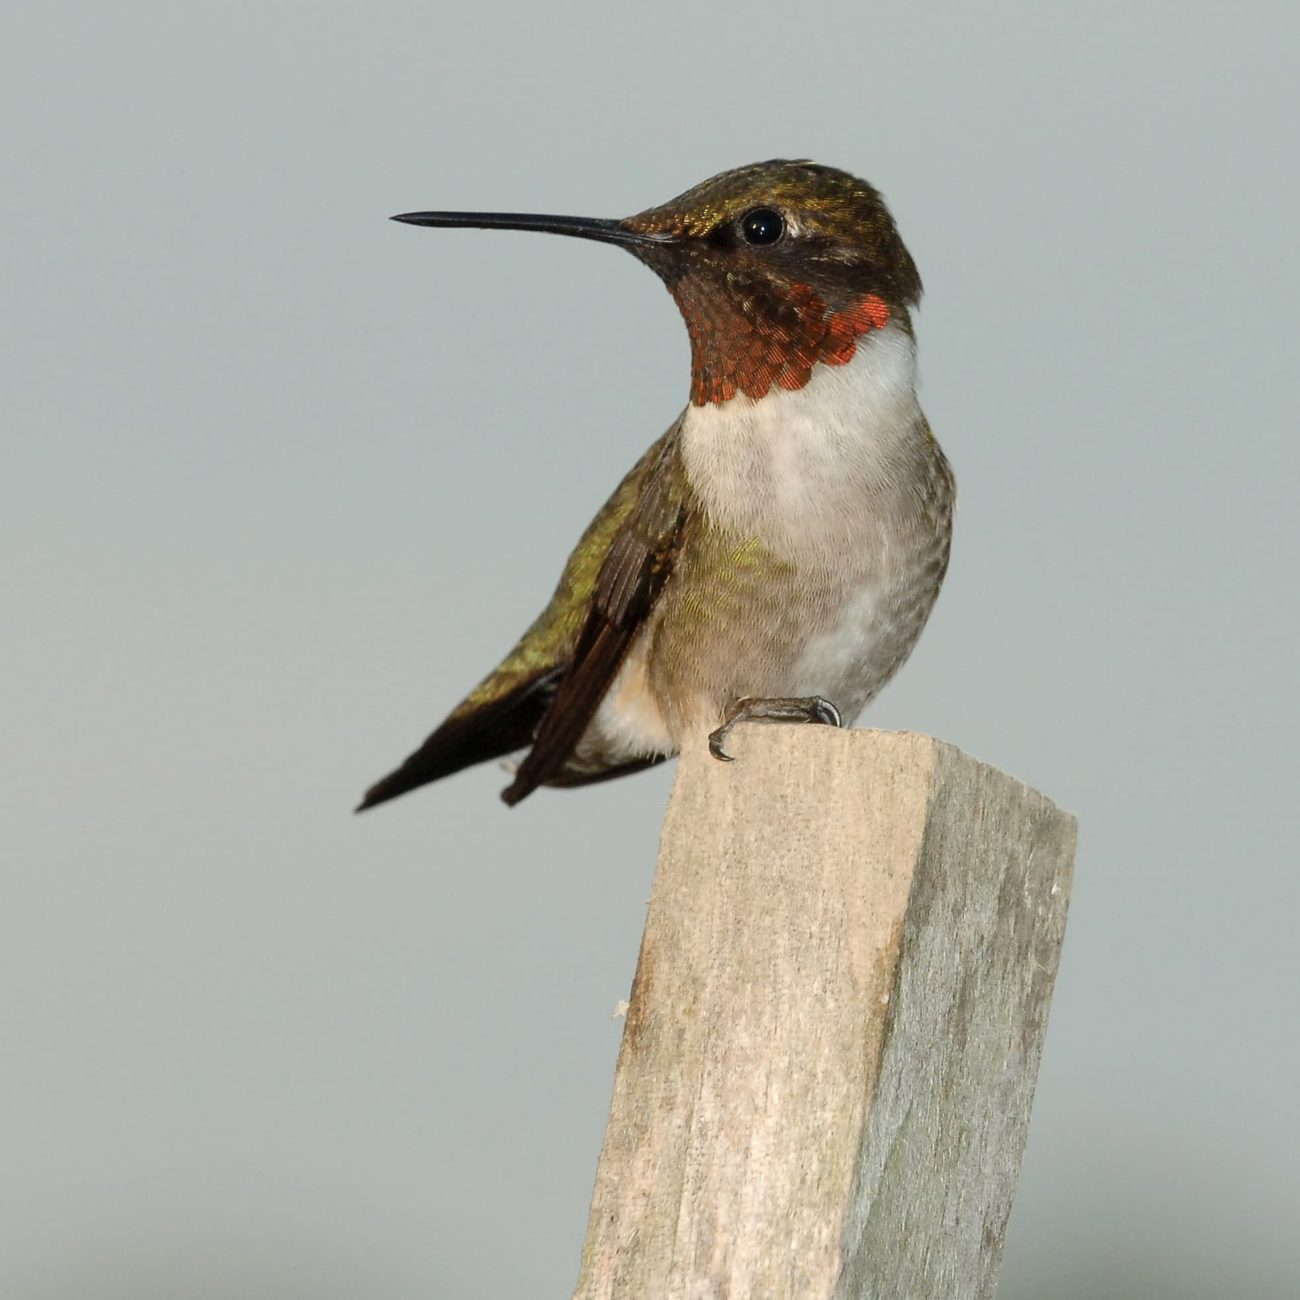 Ruby-throated hummingbird sitting on a small wood post.